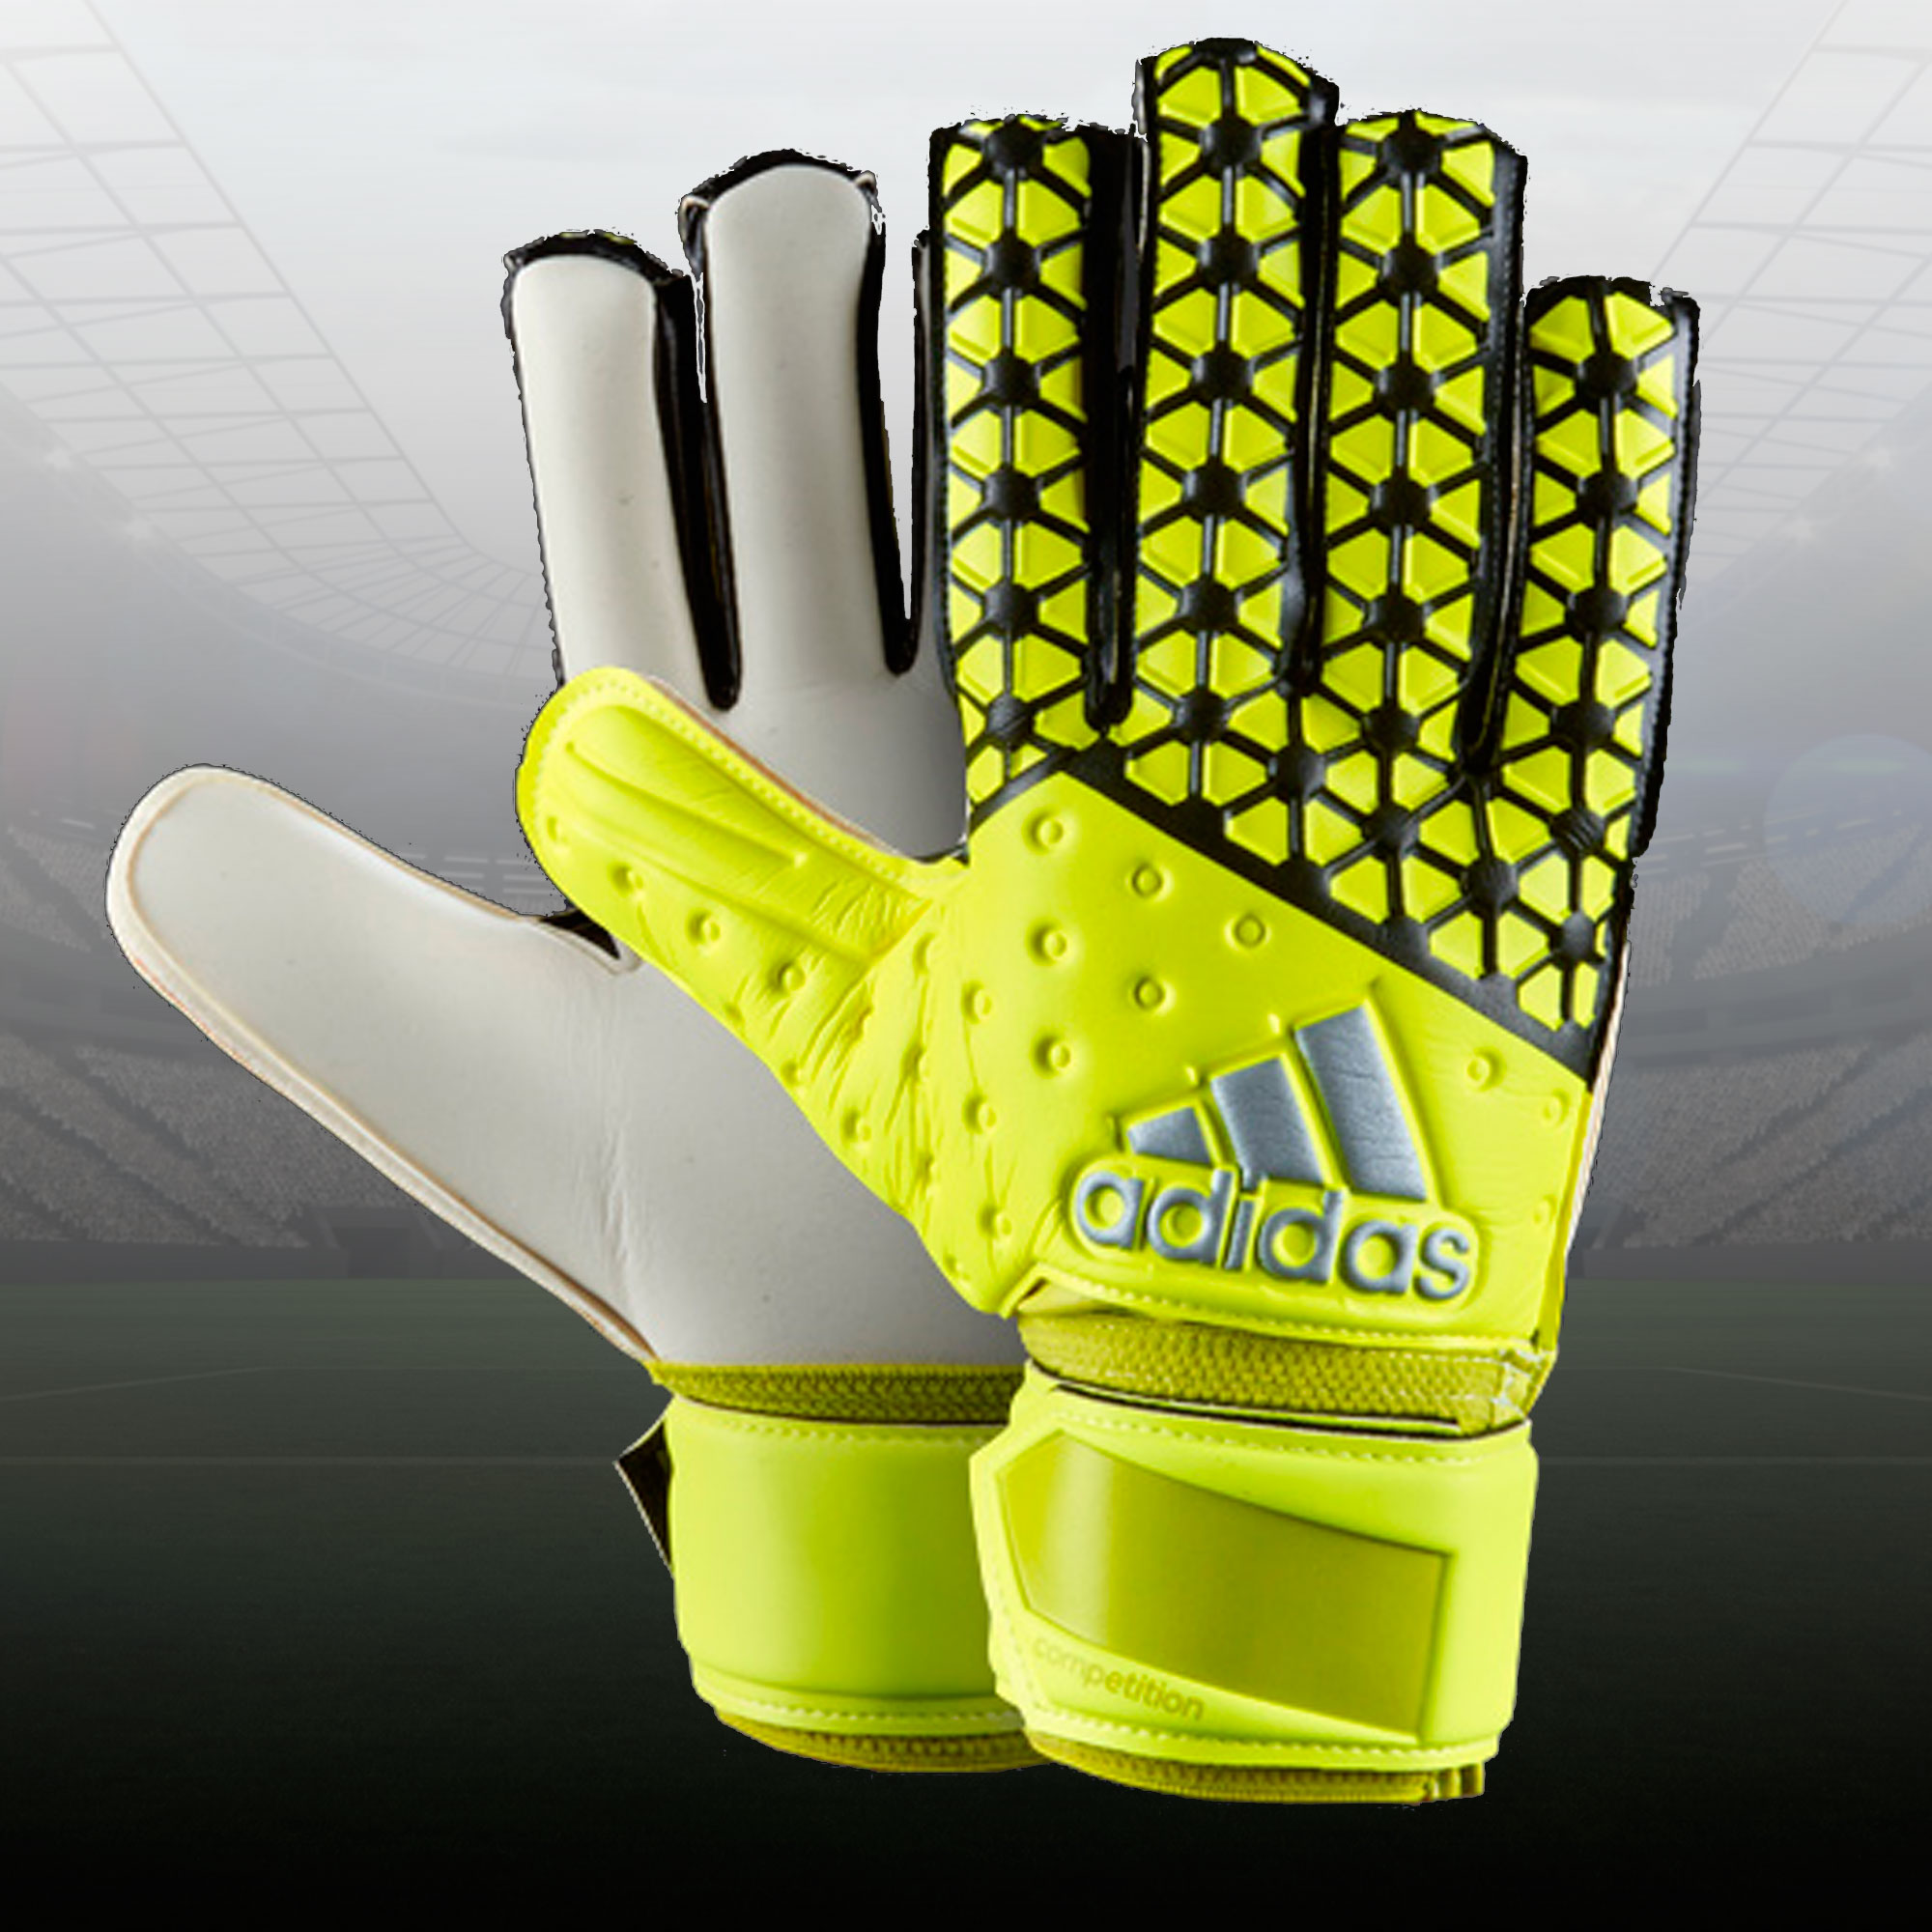 SENIOR ADIDAS GOALKEEPER GLOVES